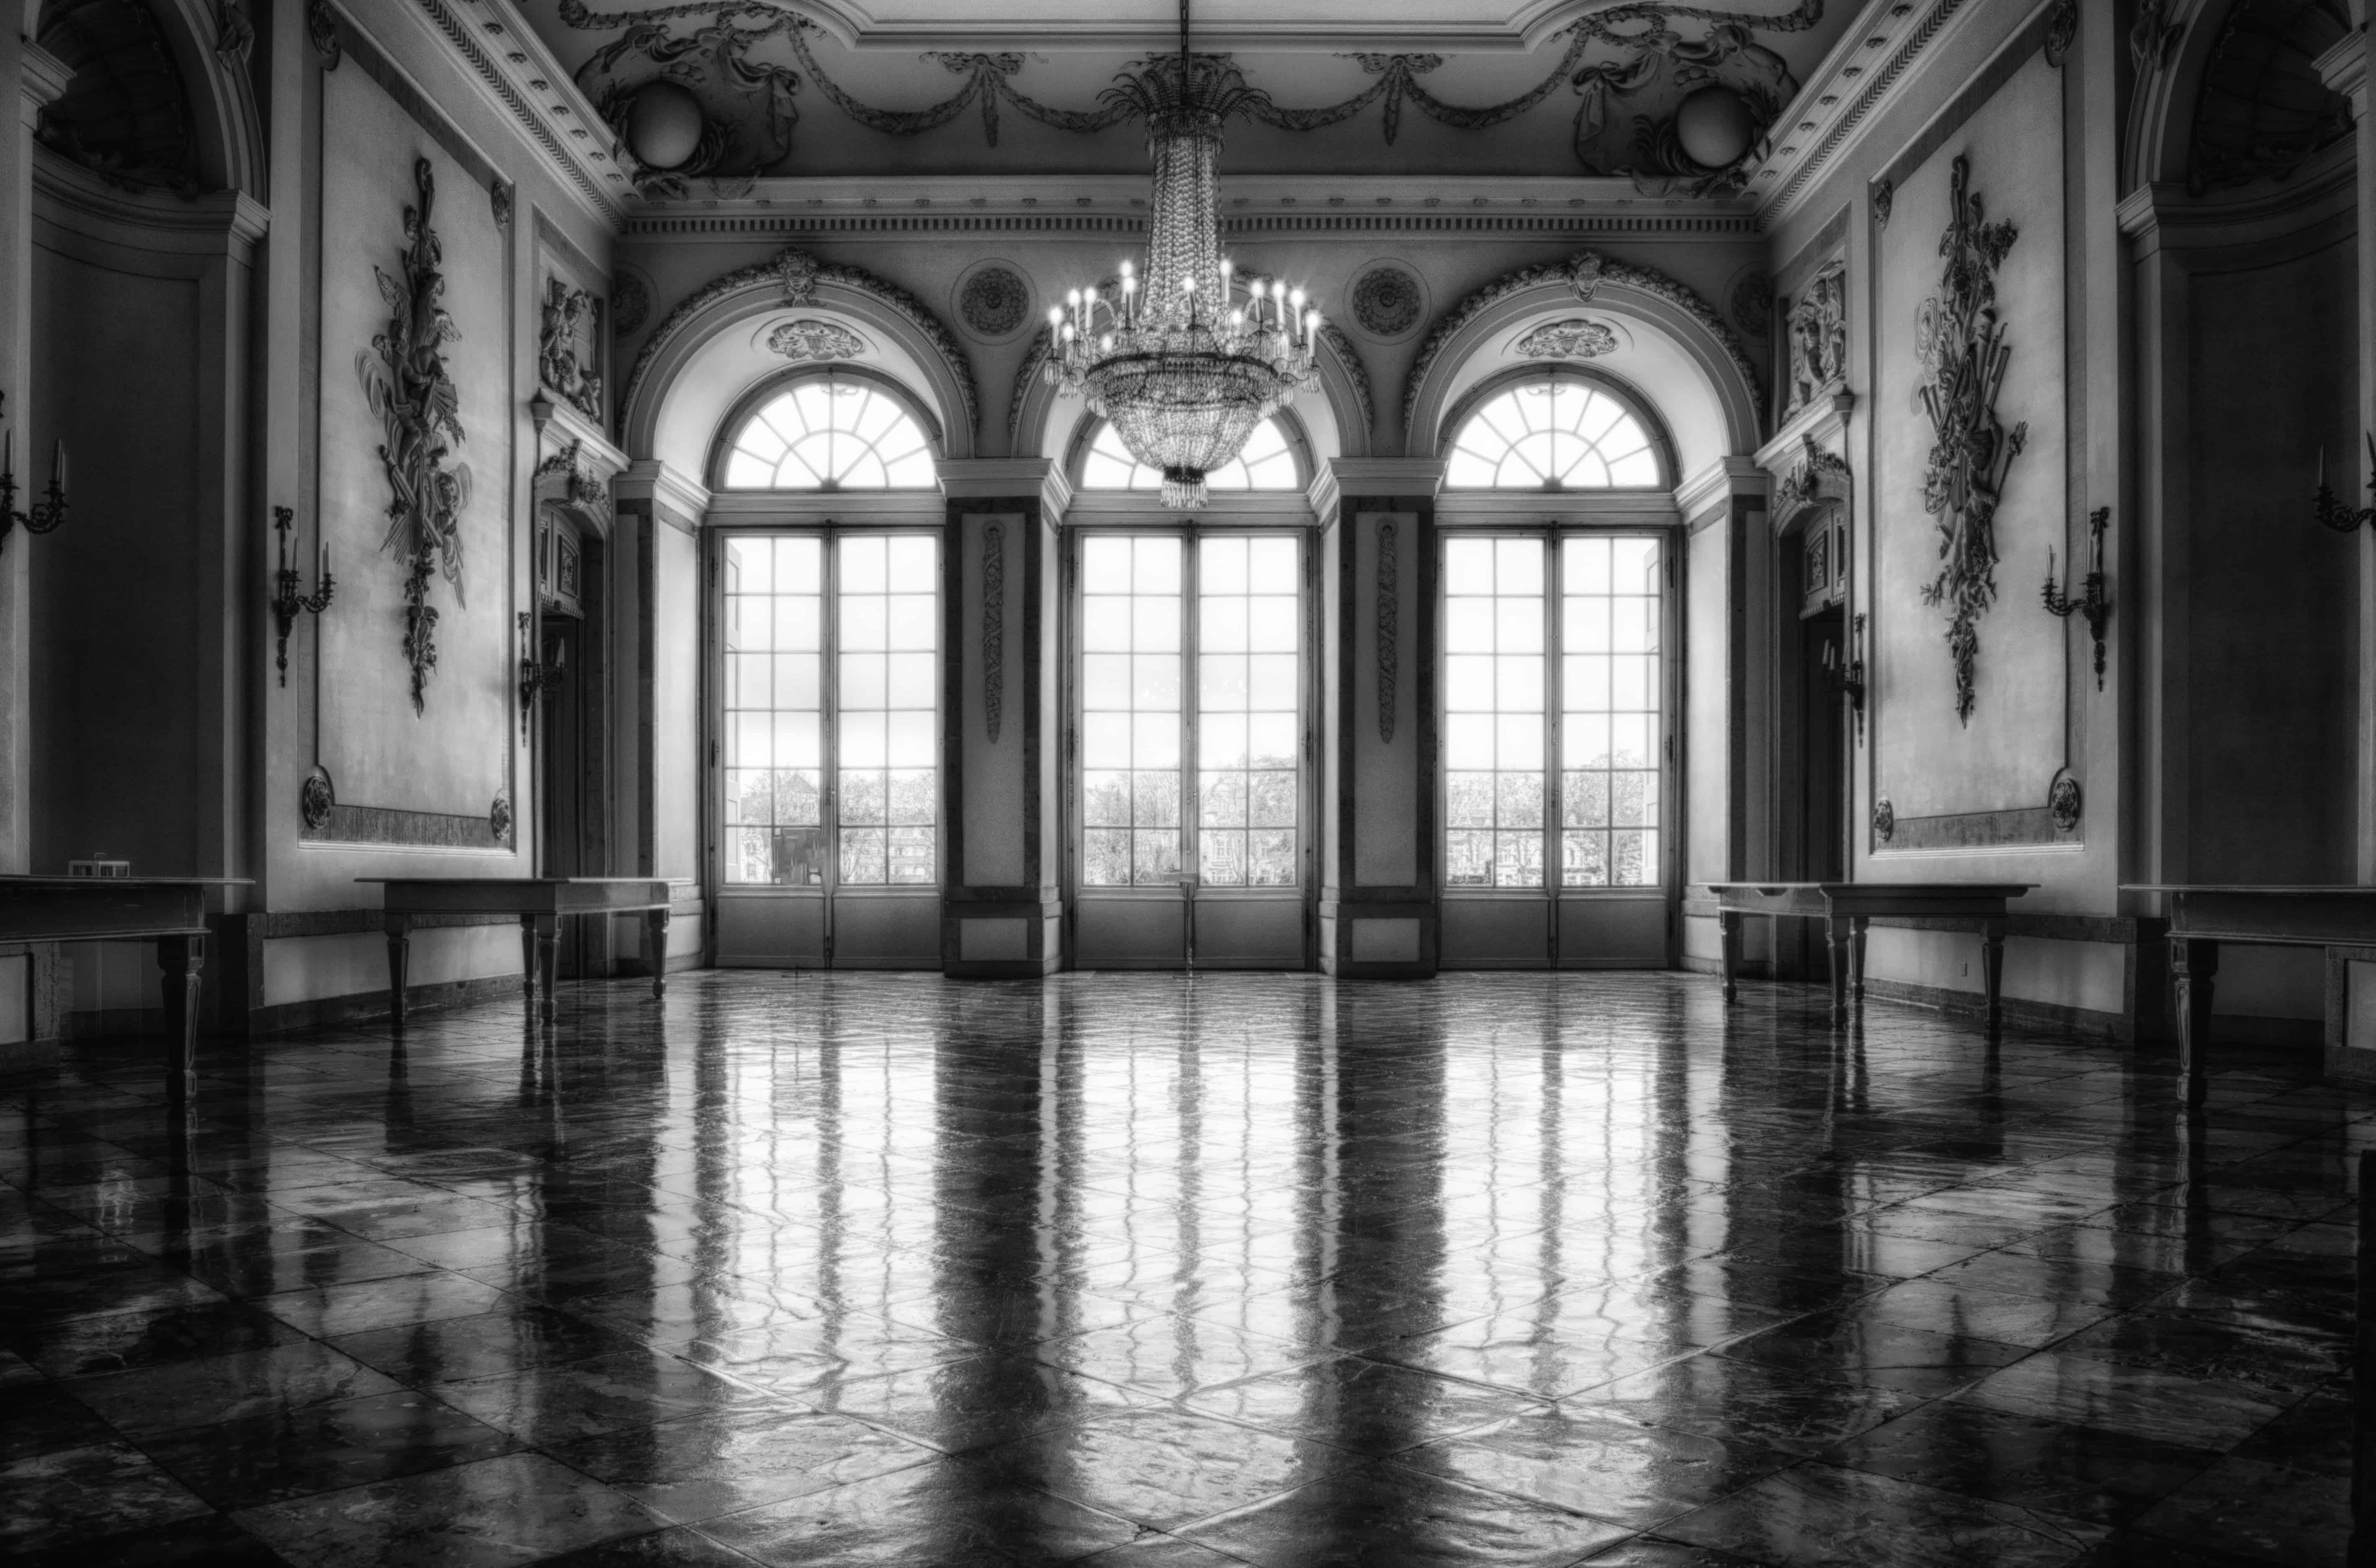 Free picture architecture palace shadow monochrome window arch old floor